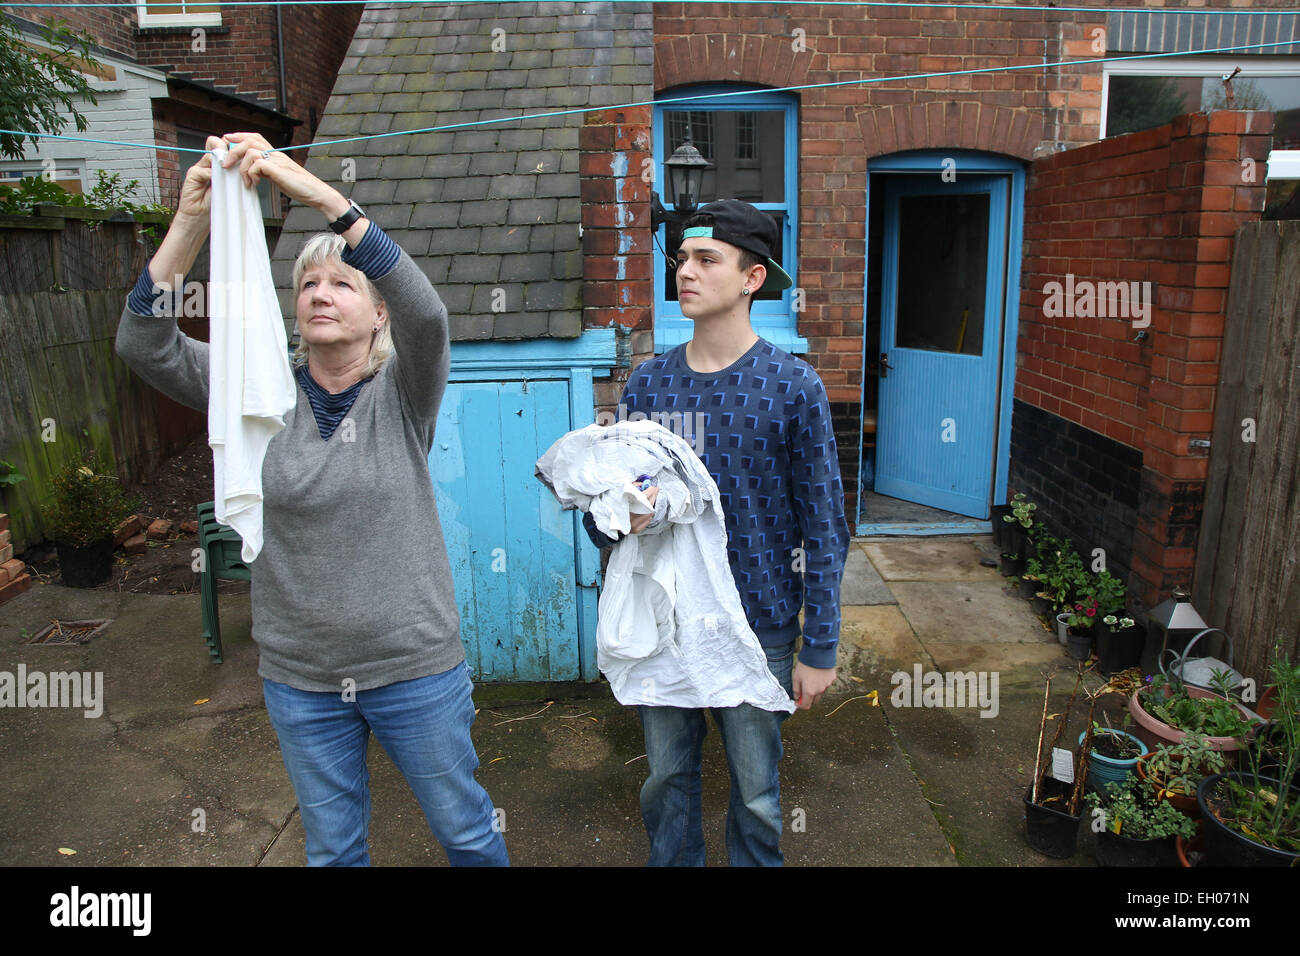 Teenager helping grandmother with hanging washing - model released - Stock Image